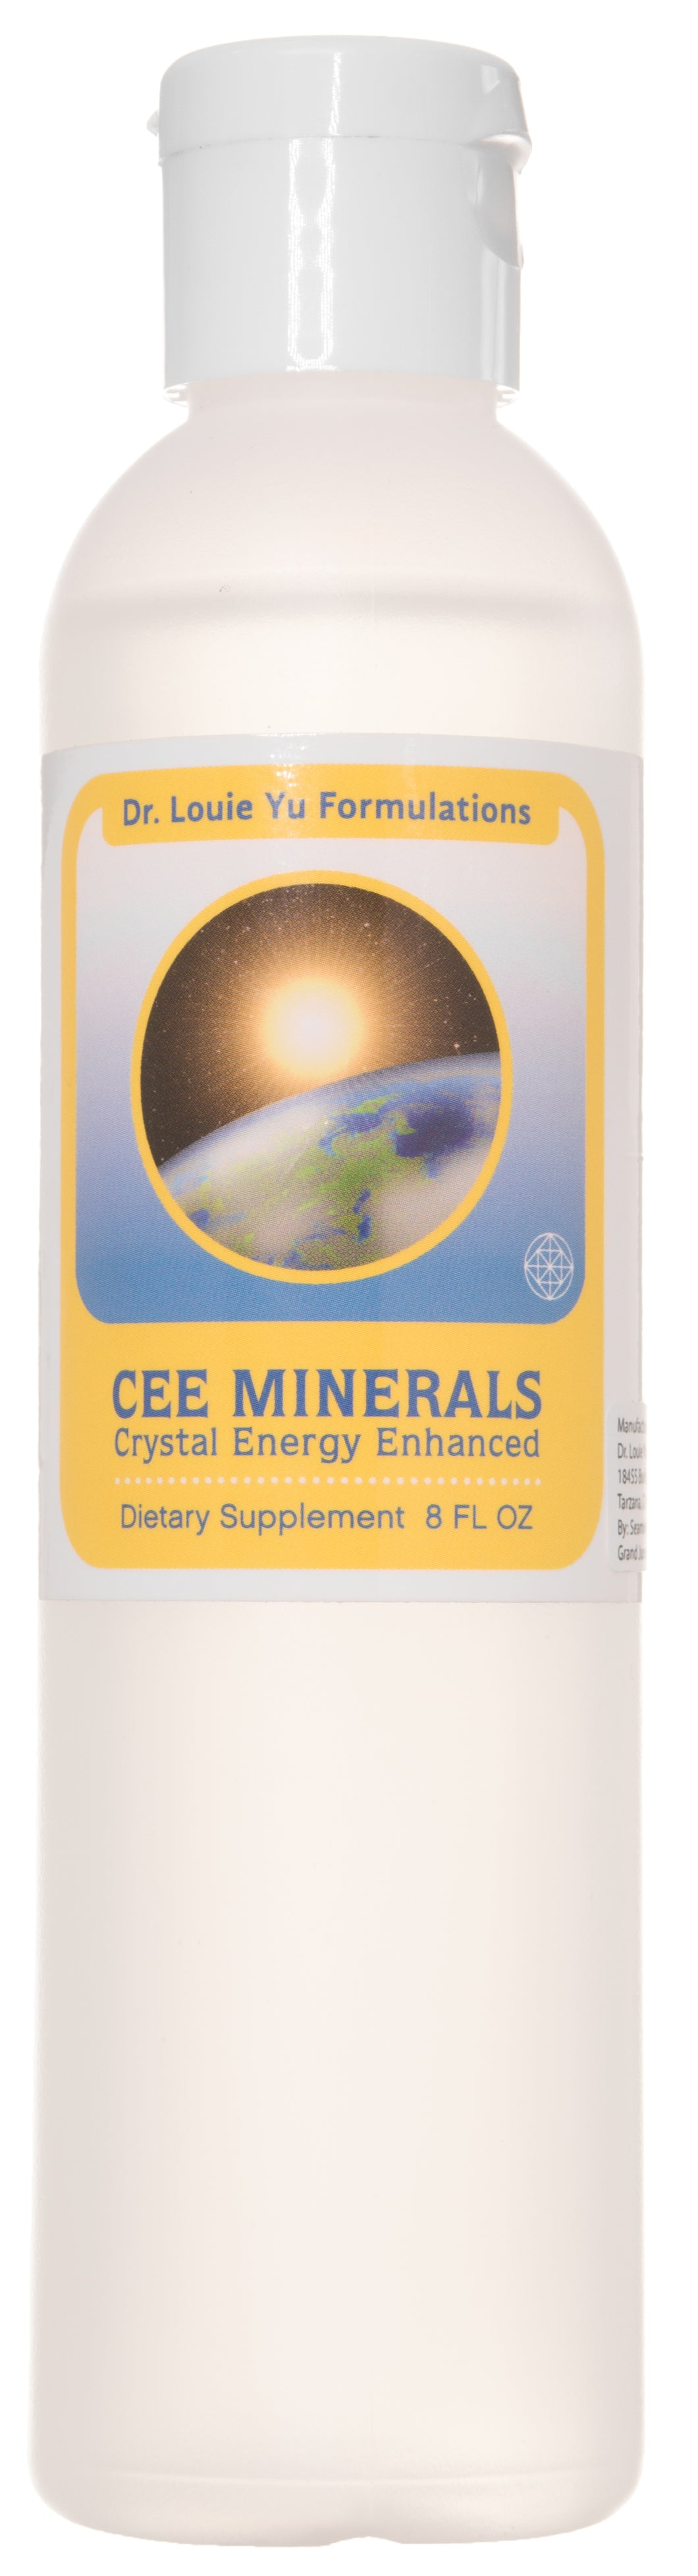 Dr. Louie Yu Formulations CEE Minerals Crystal Energy Enhanced | NO Calories NO Sugar | Magnesium, Potassium, Sulphur & Silica